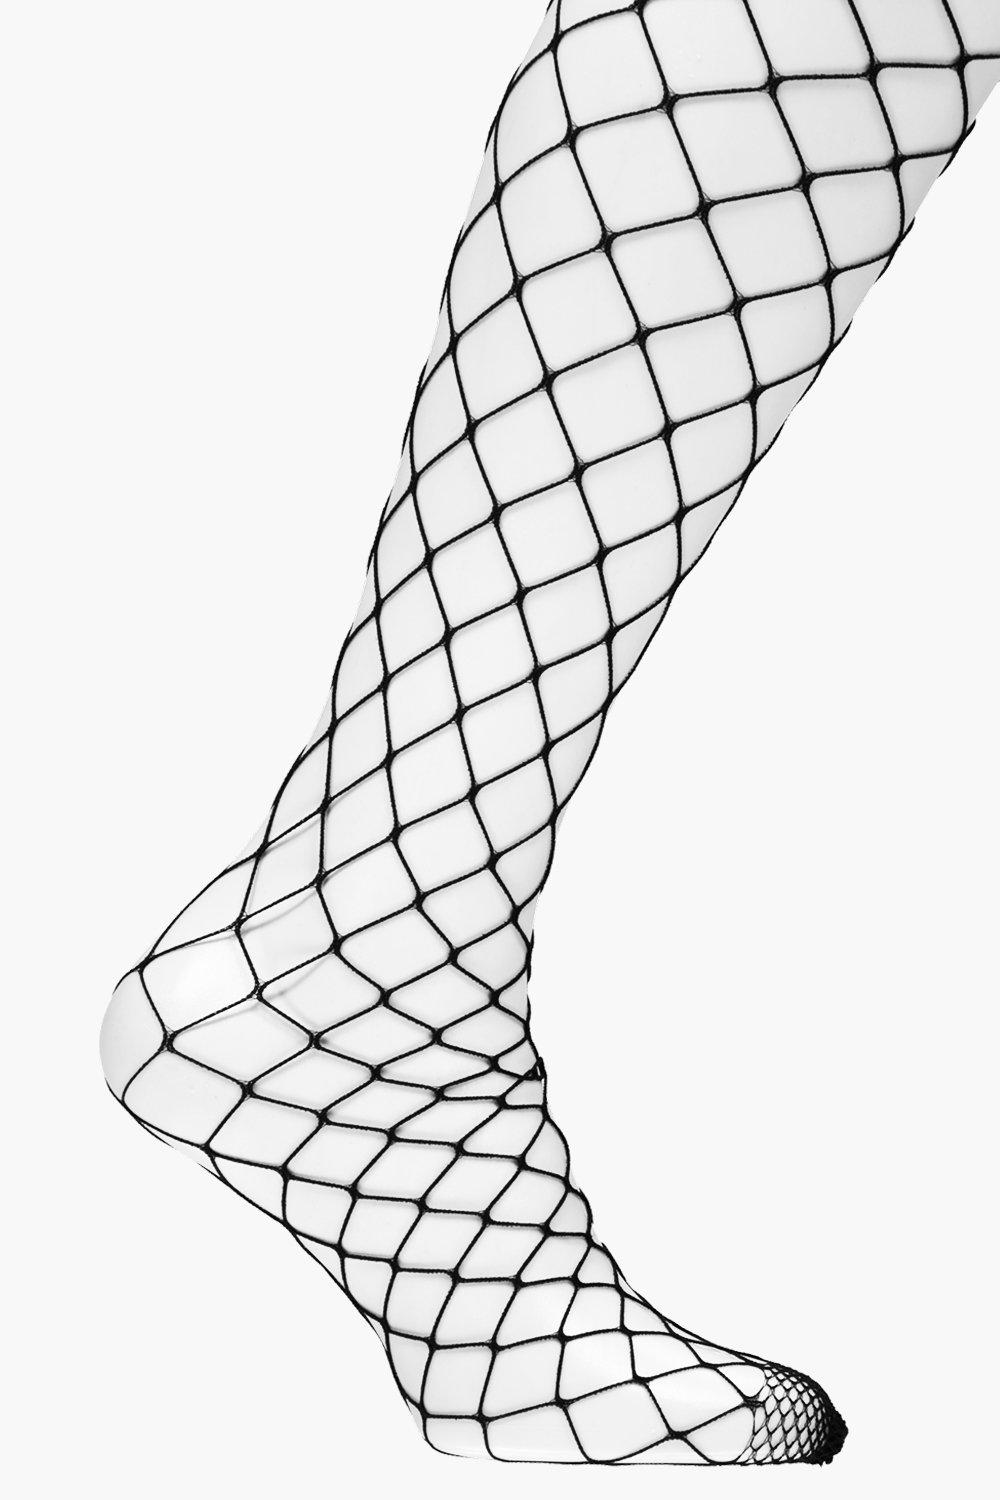 Catherine Large Fishnet Tights - black - Plus Cath